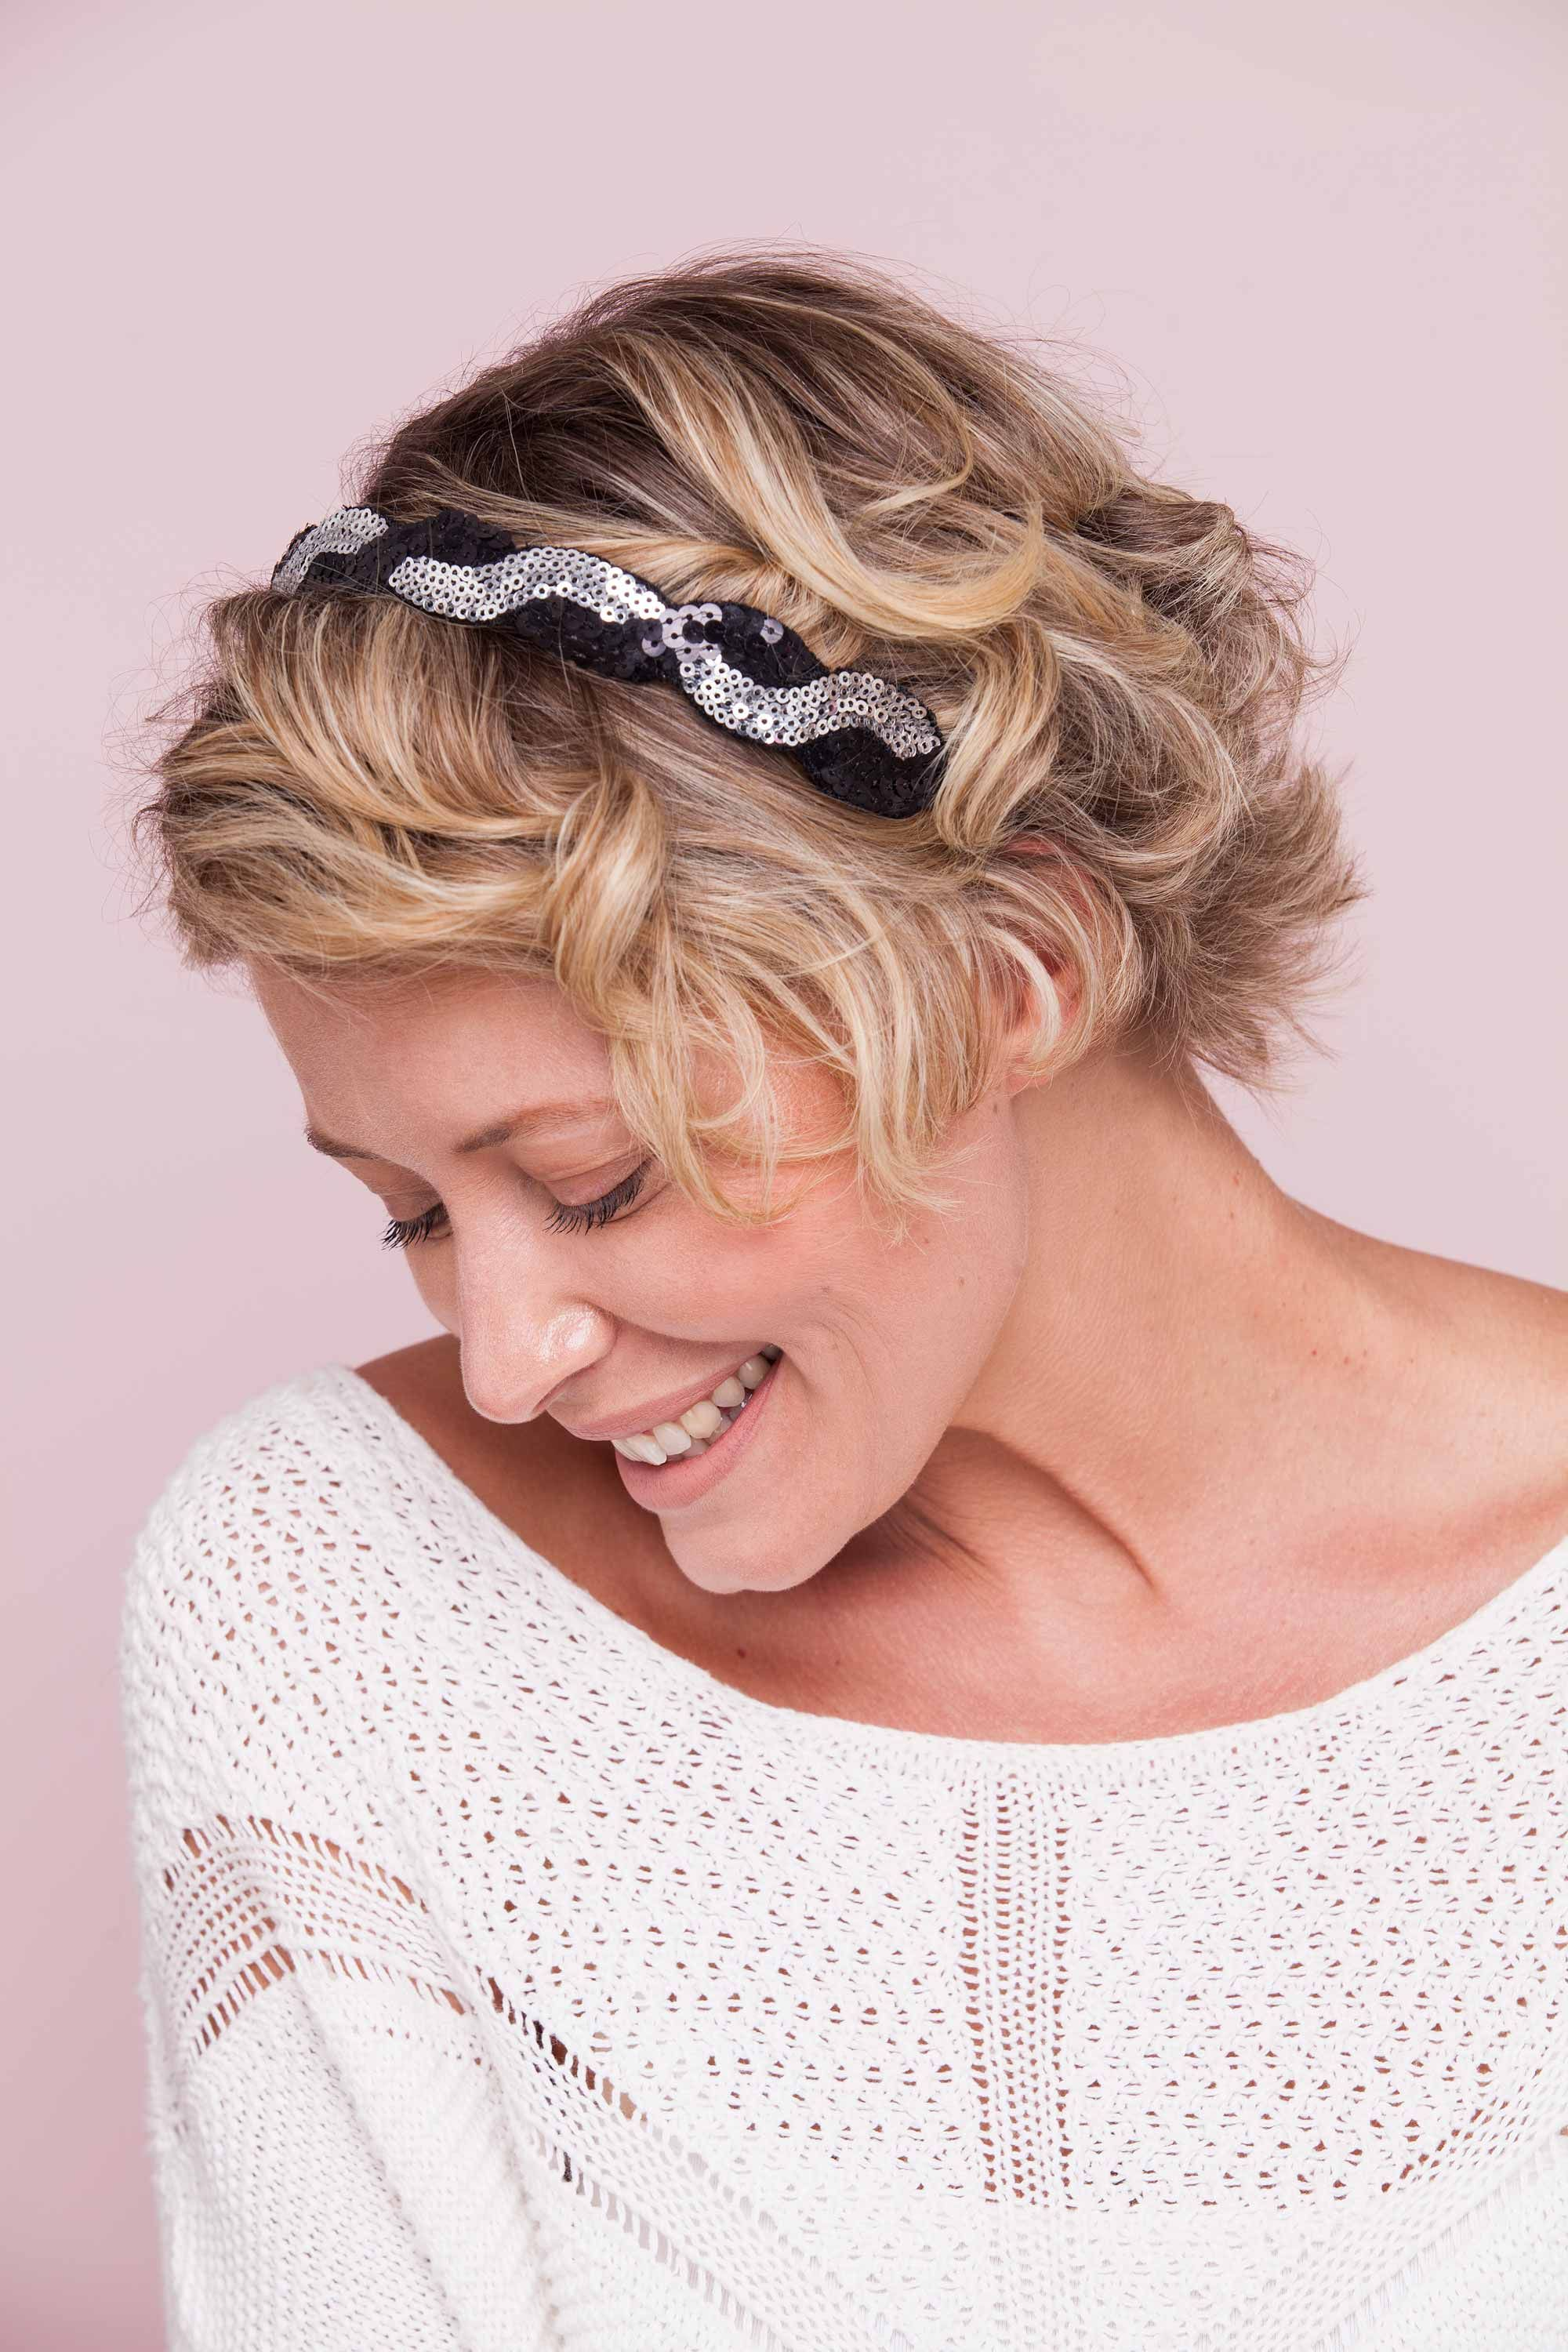 Wedding Guest Hairstyles Don't Need To Be Boring Jazz Up Your Nye Look With A Shimmering Blowout Or Glittery Headband: Headband For Wedding Guest At Websimilar.org